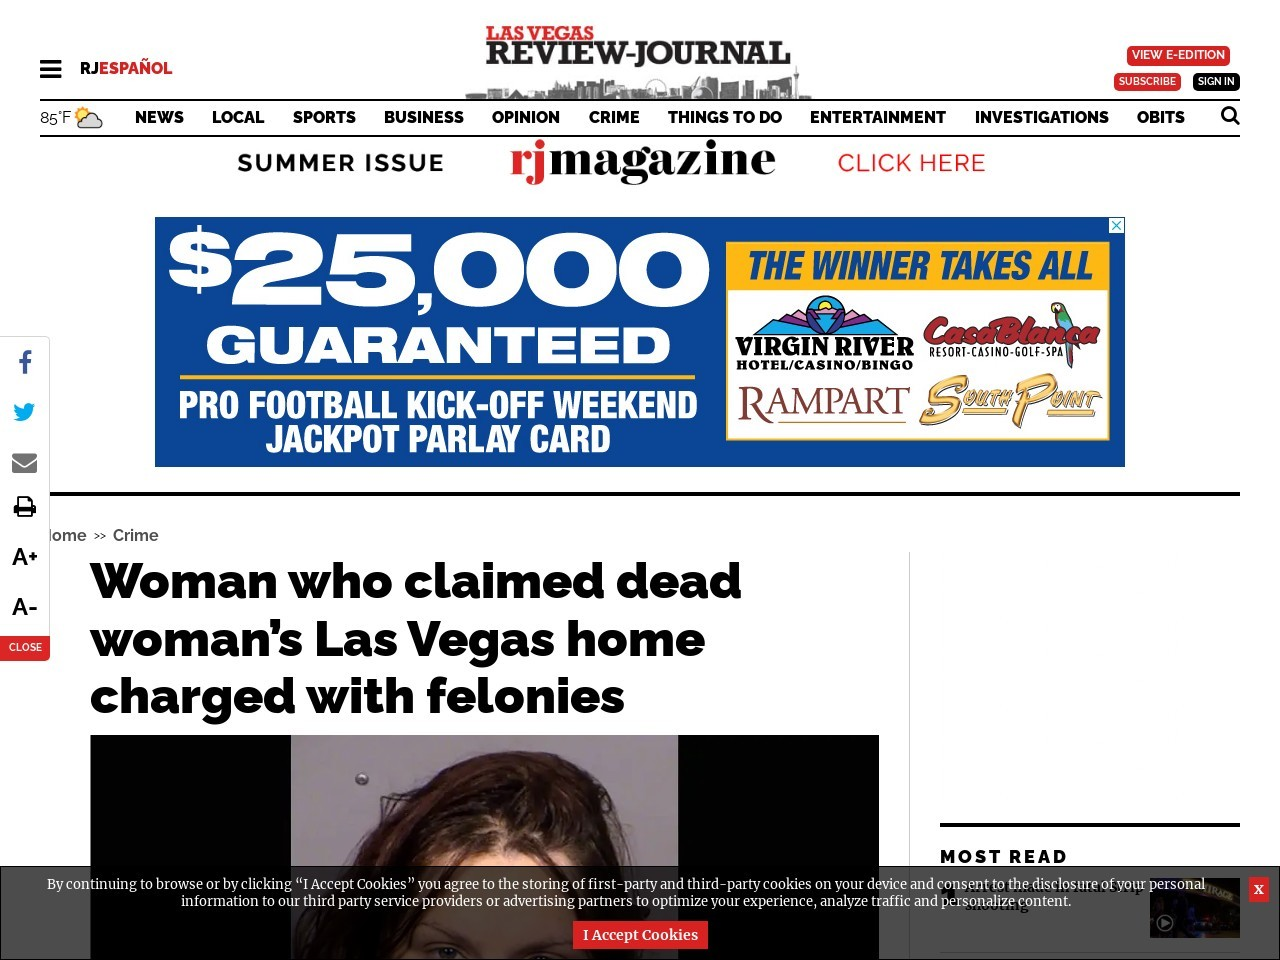 Woman who claimed dead woman's Las Vegas home charged with felonies